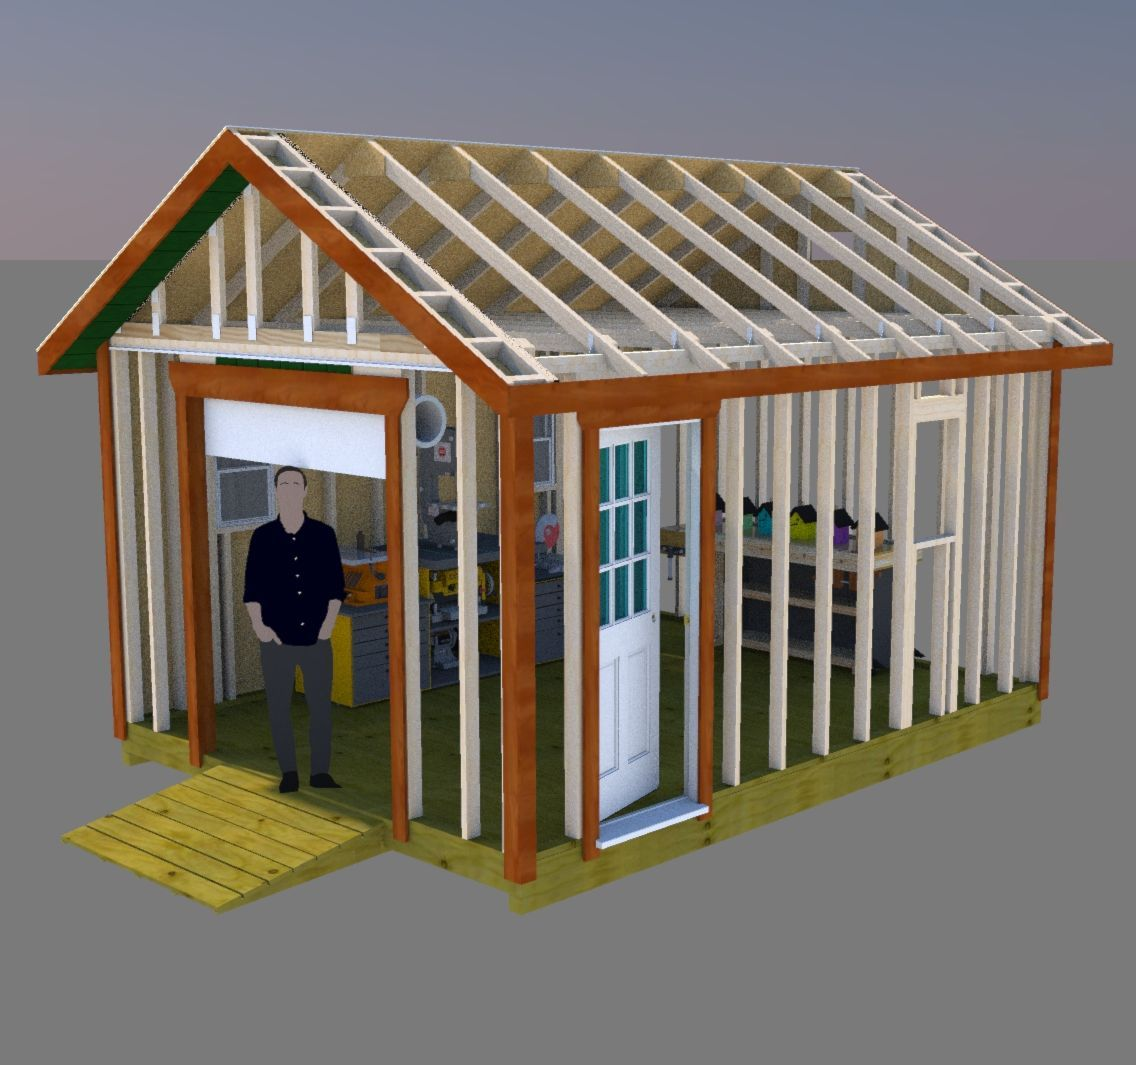 12x16 12x16 Gable Storage Shed Plans With Roll Up Shed Door Sheds